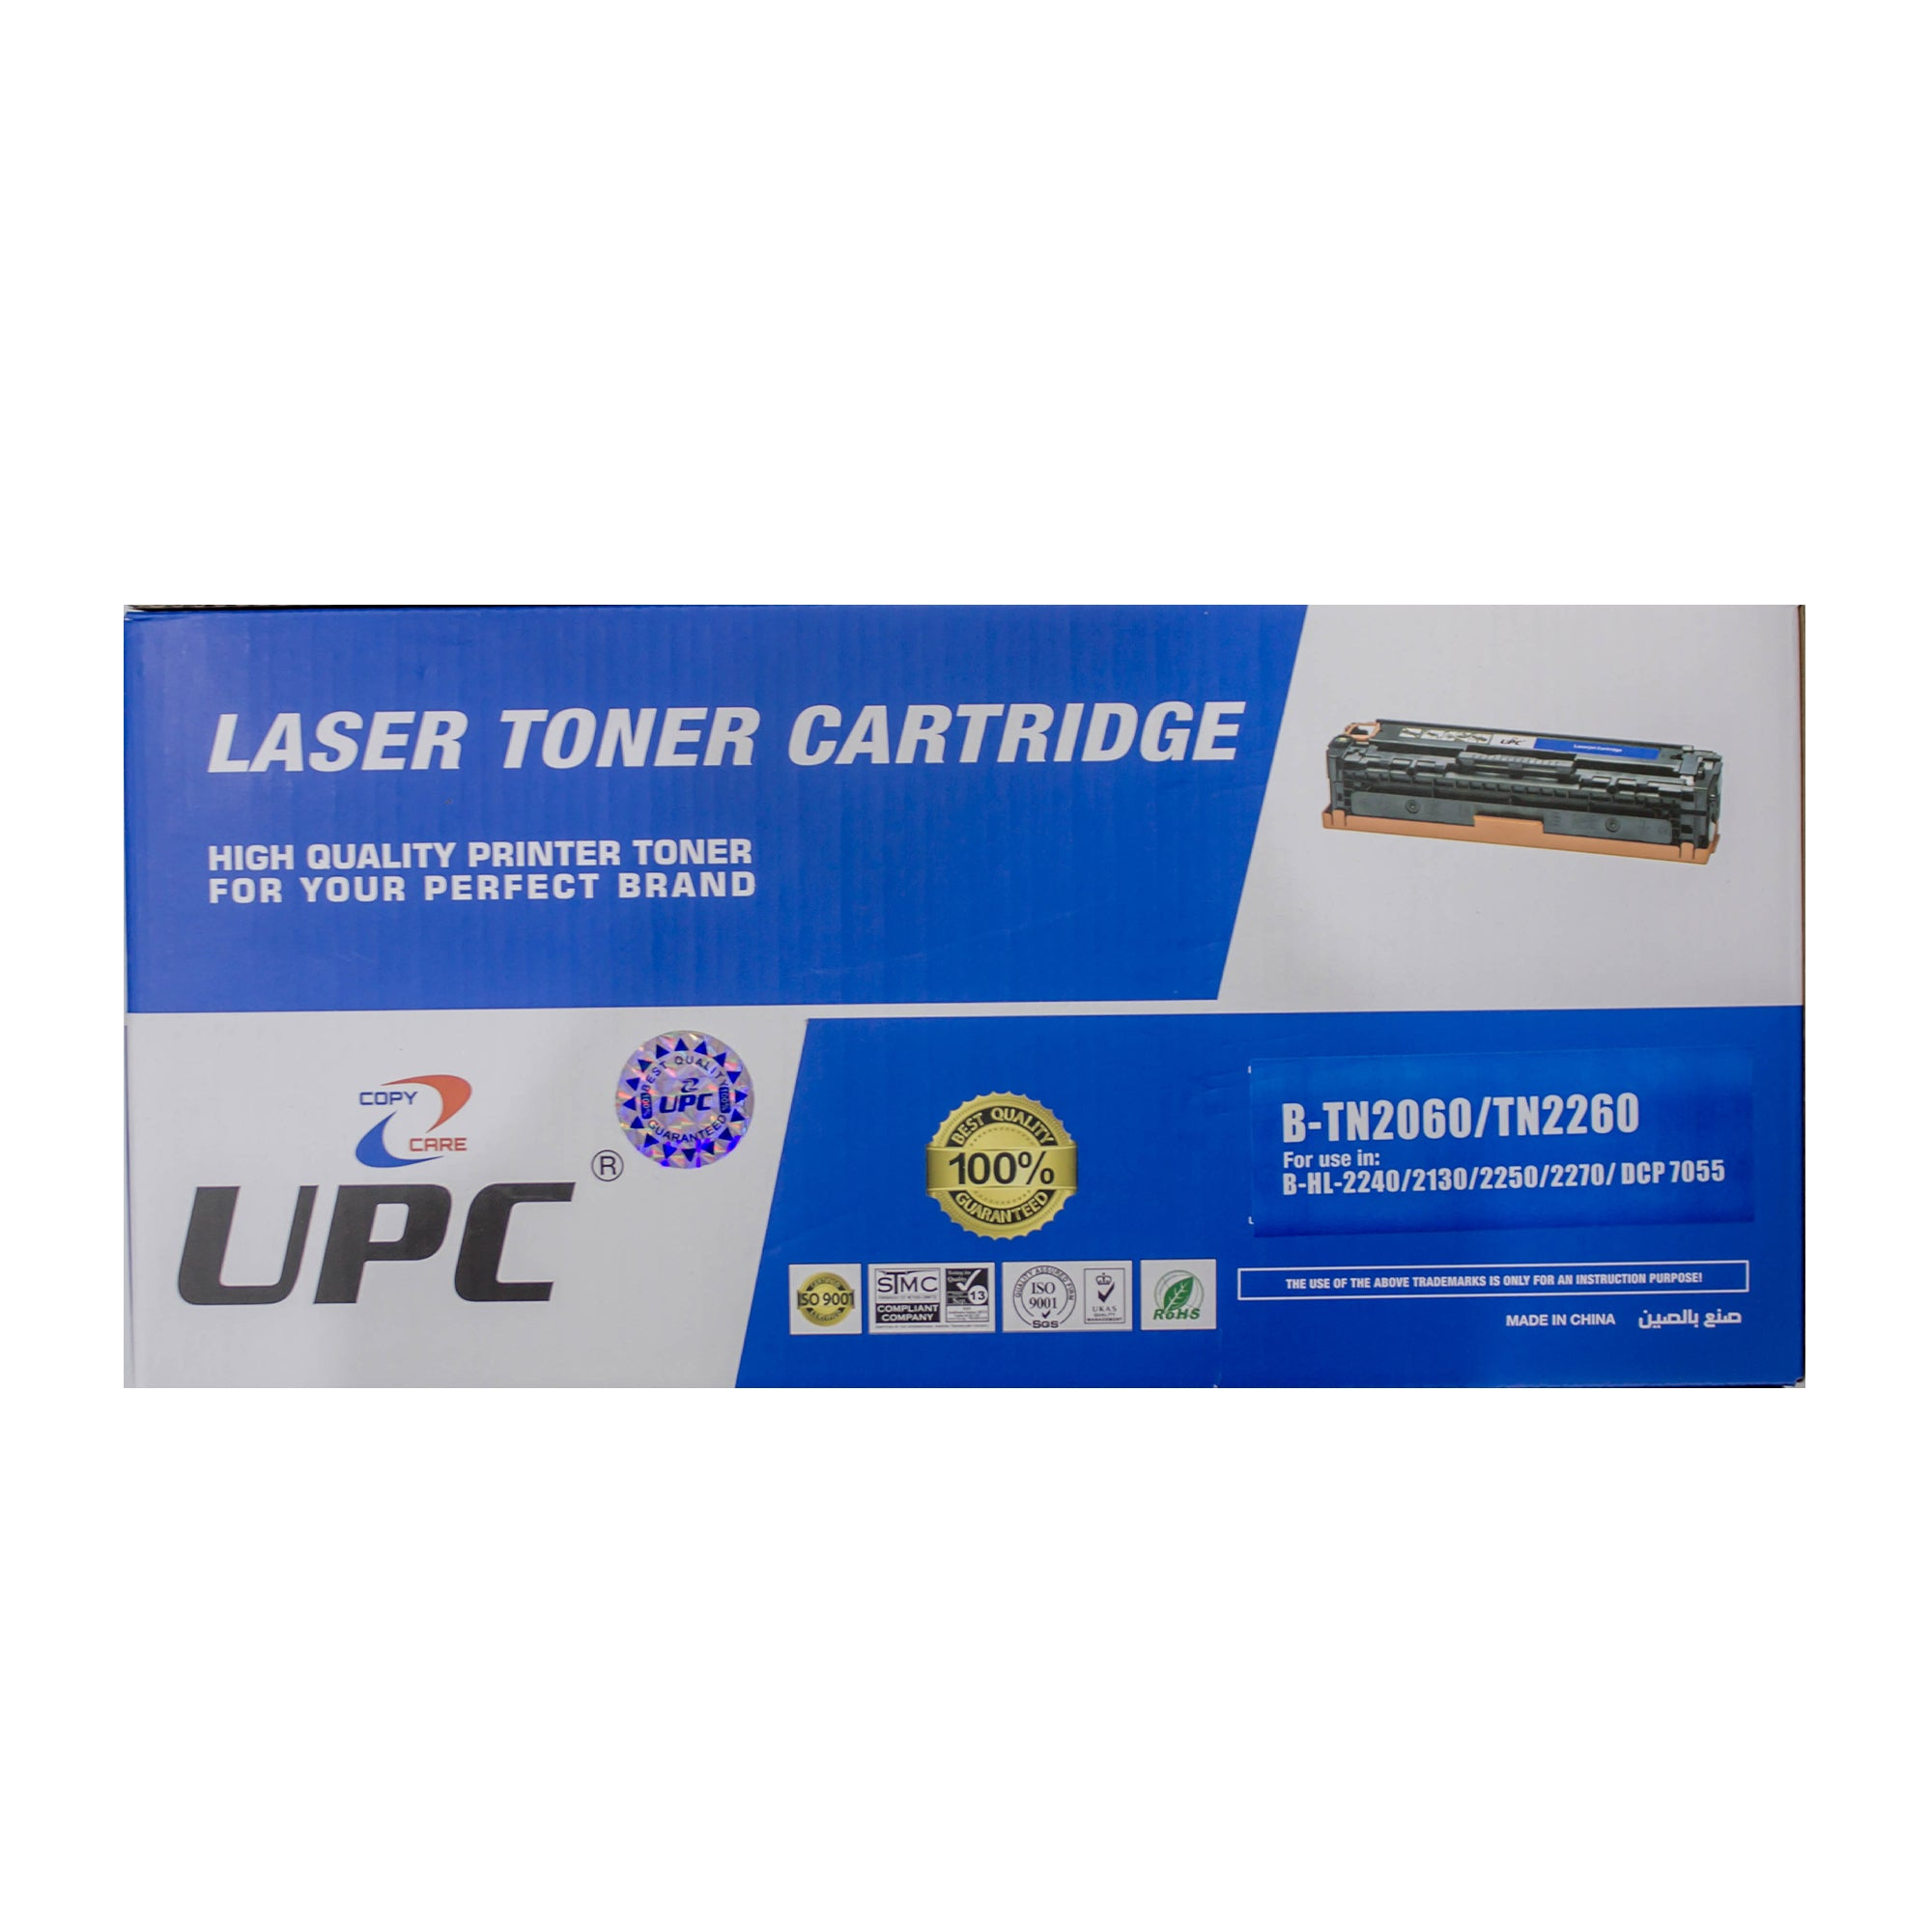 UPC TN2060 l TN2260 Black Laser Toner Compatible with Brother Laser Printers